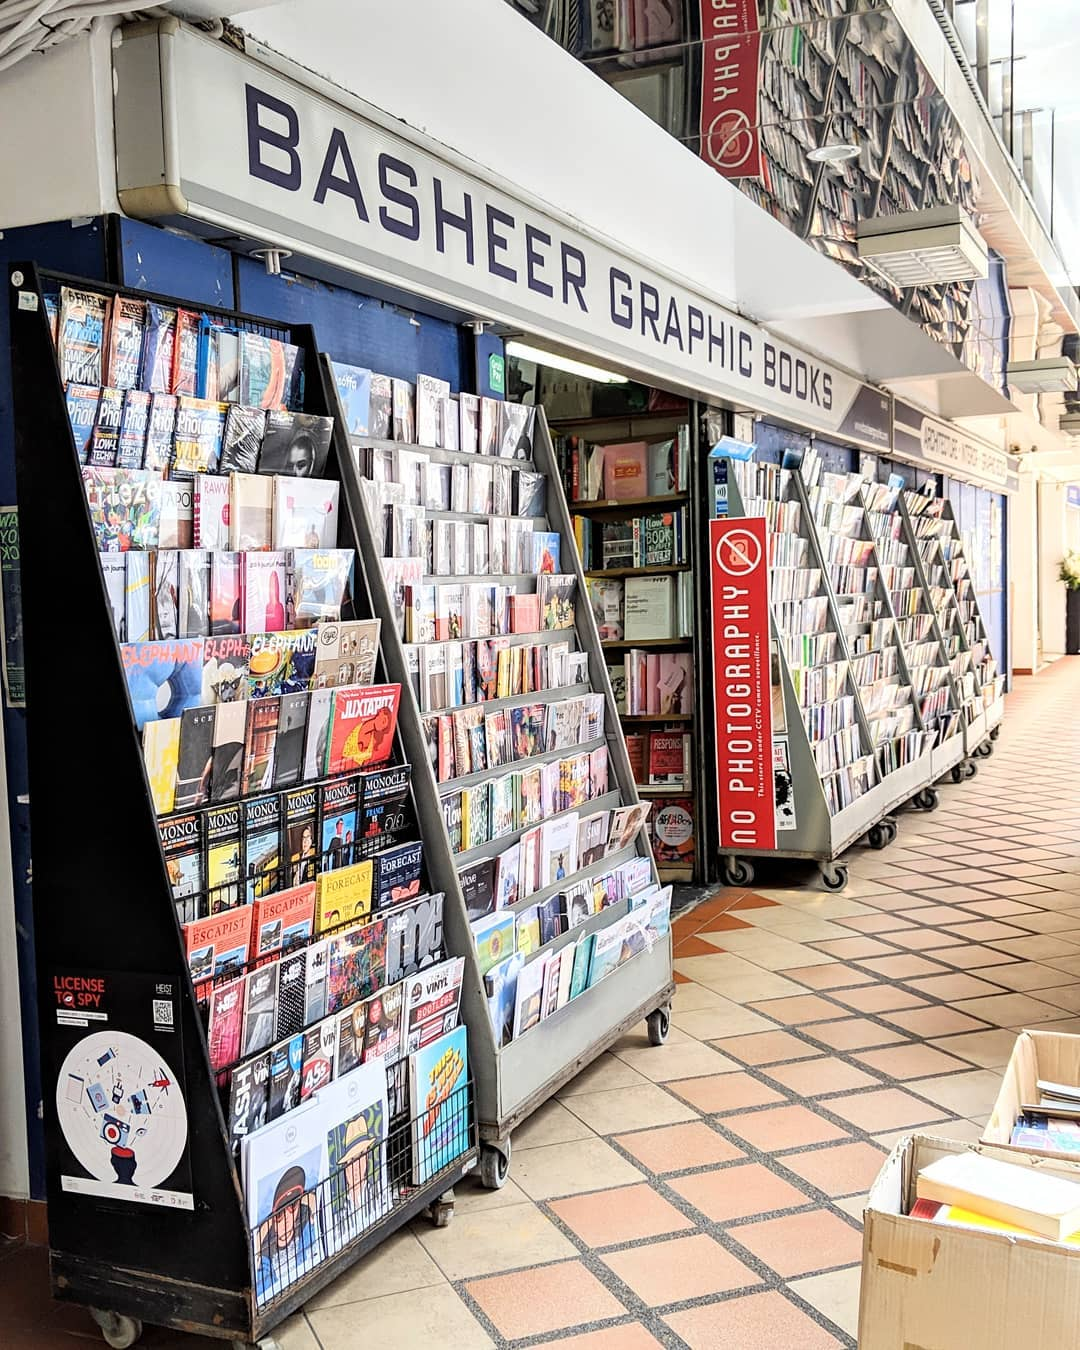 Secondhand Bookstores - Basheer Graphic Books